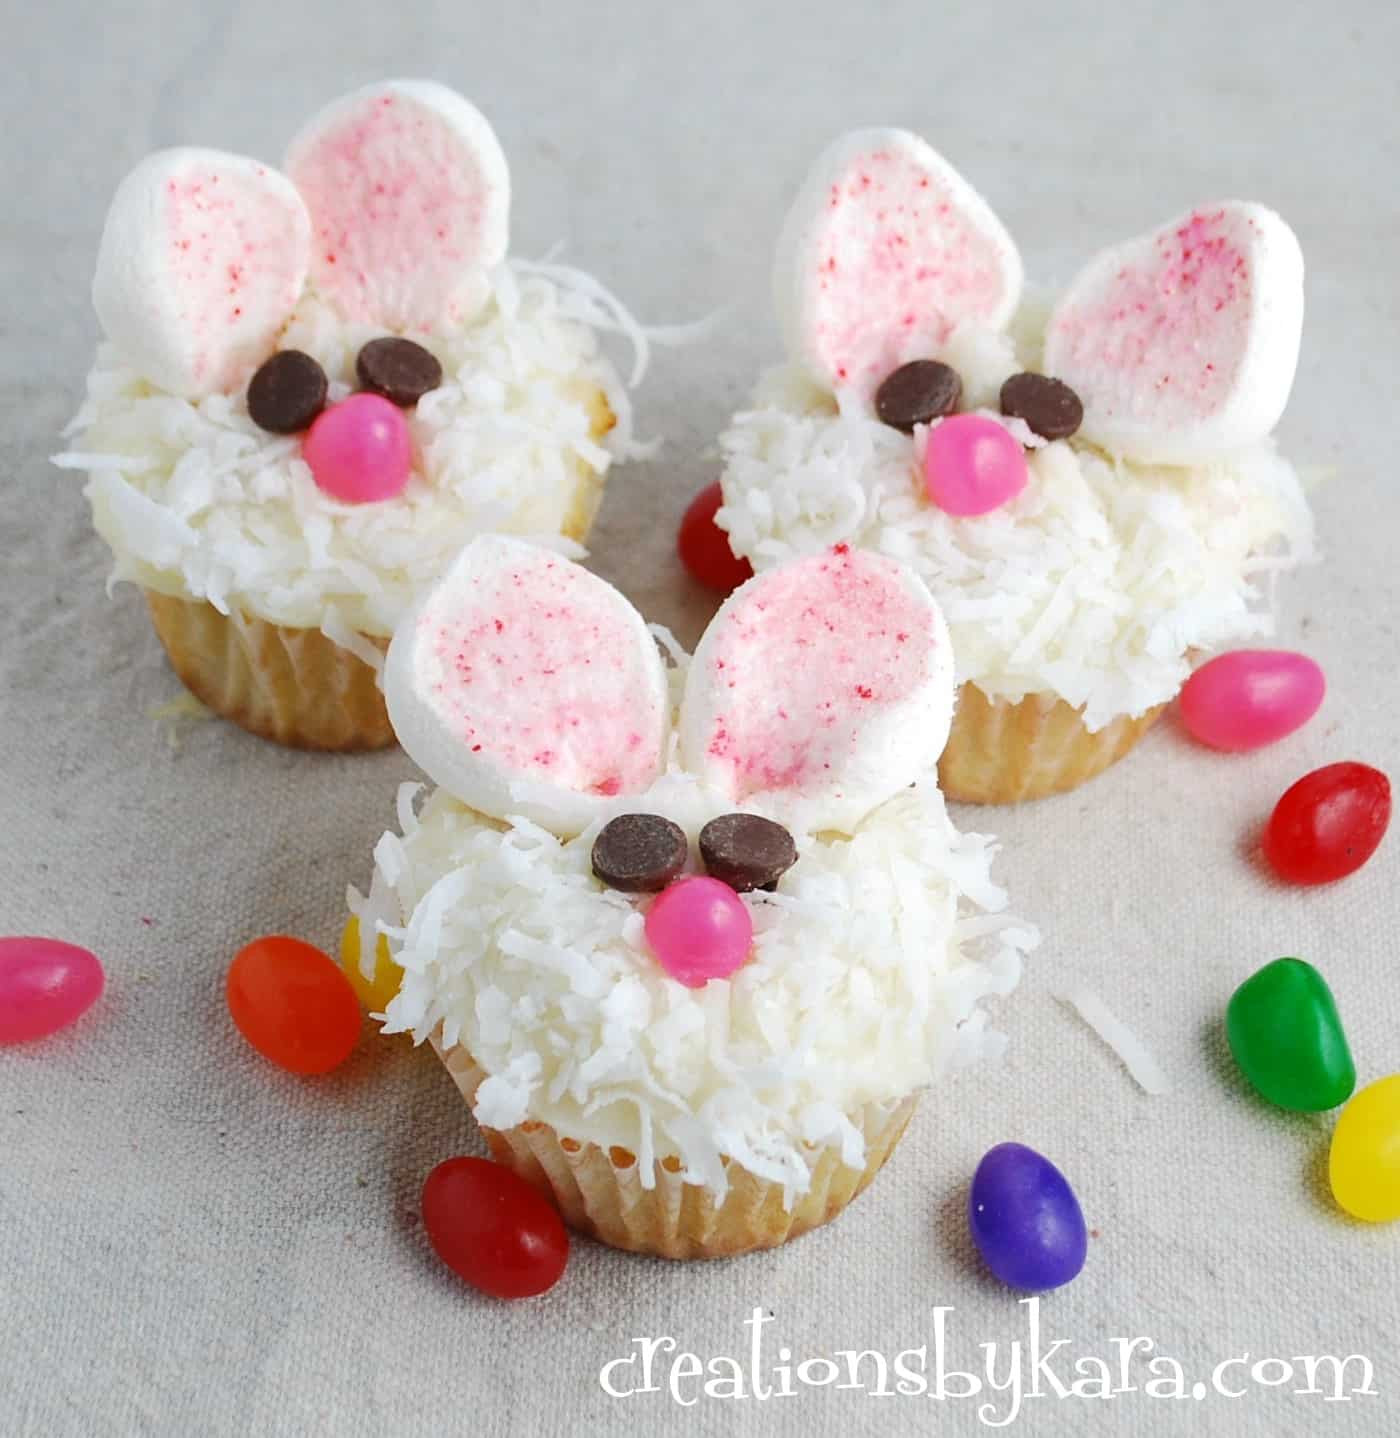 Cute Easter Cupcakes  Cute Easter Cupcakes